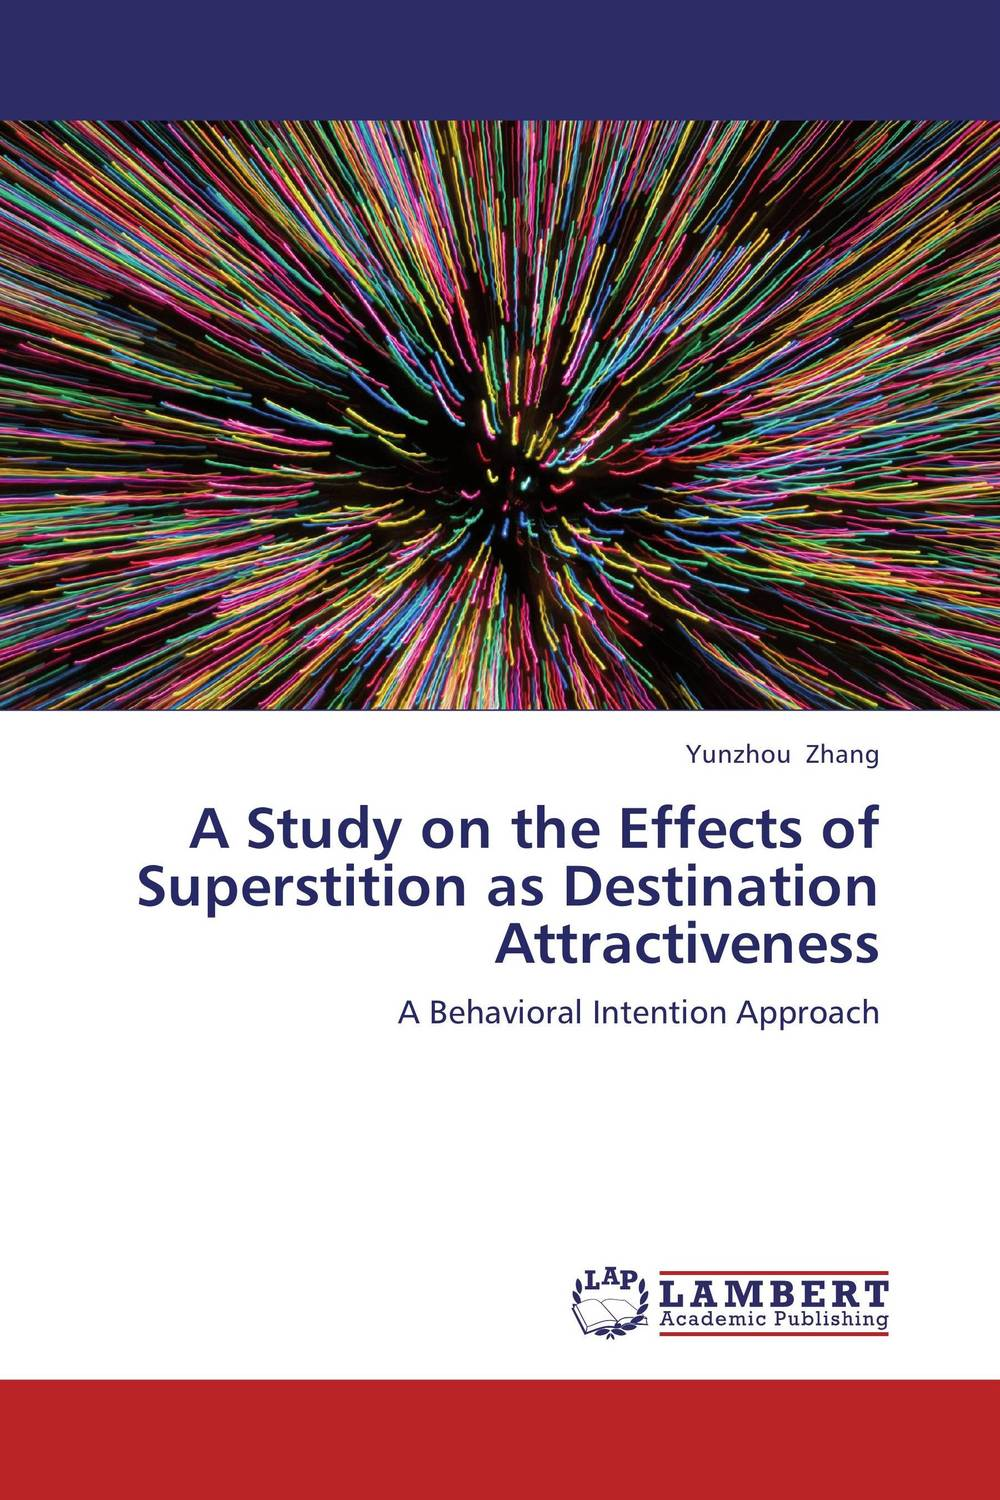 A Study on the Effects of Superstition as Destination Attractiveness mike davis knight s microsoft business intelligence 24 hour trainer